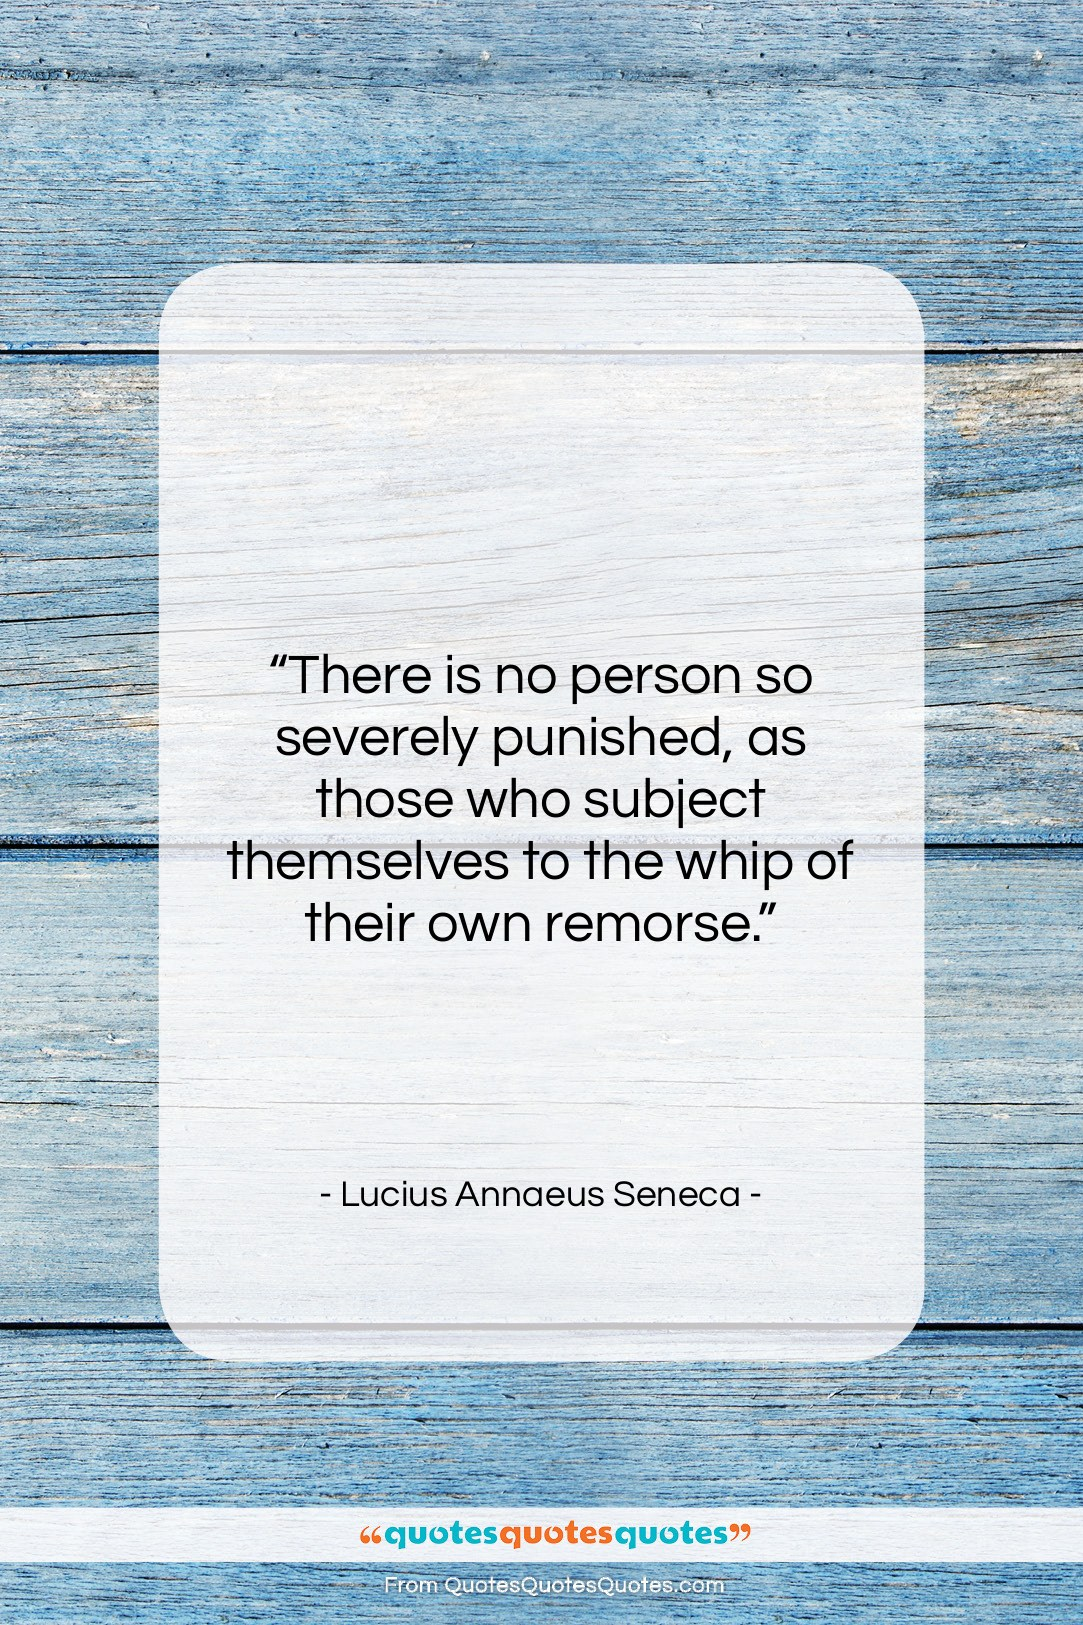 """Lucius Annaeus Seneca quote: """"There is no person so severely punished,…""""- at QuotesQuotesQuotes.com"""